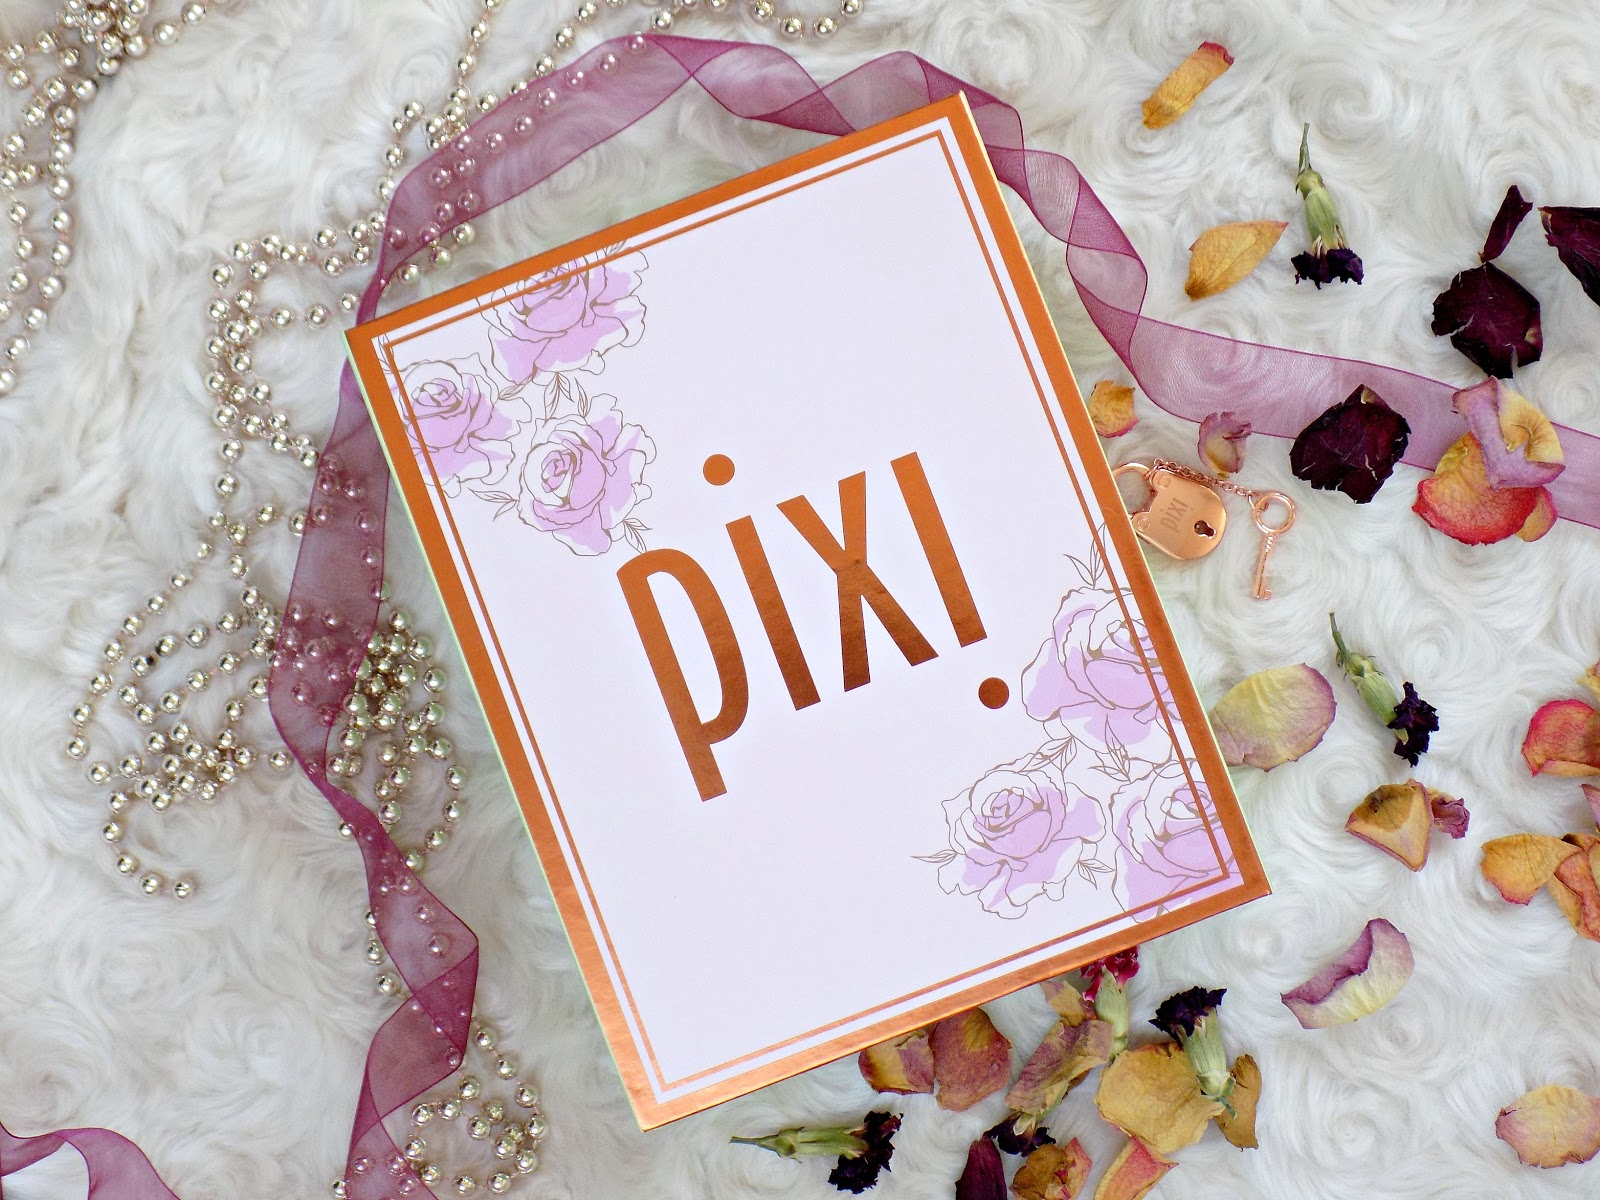 Pixi PR package, rose skin and lip treats